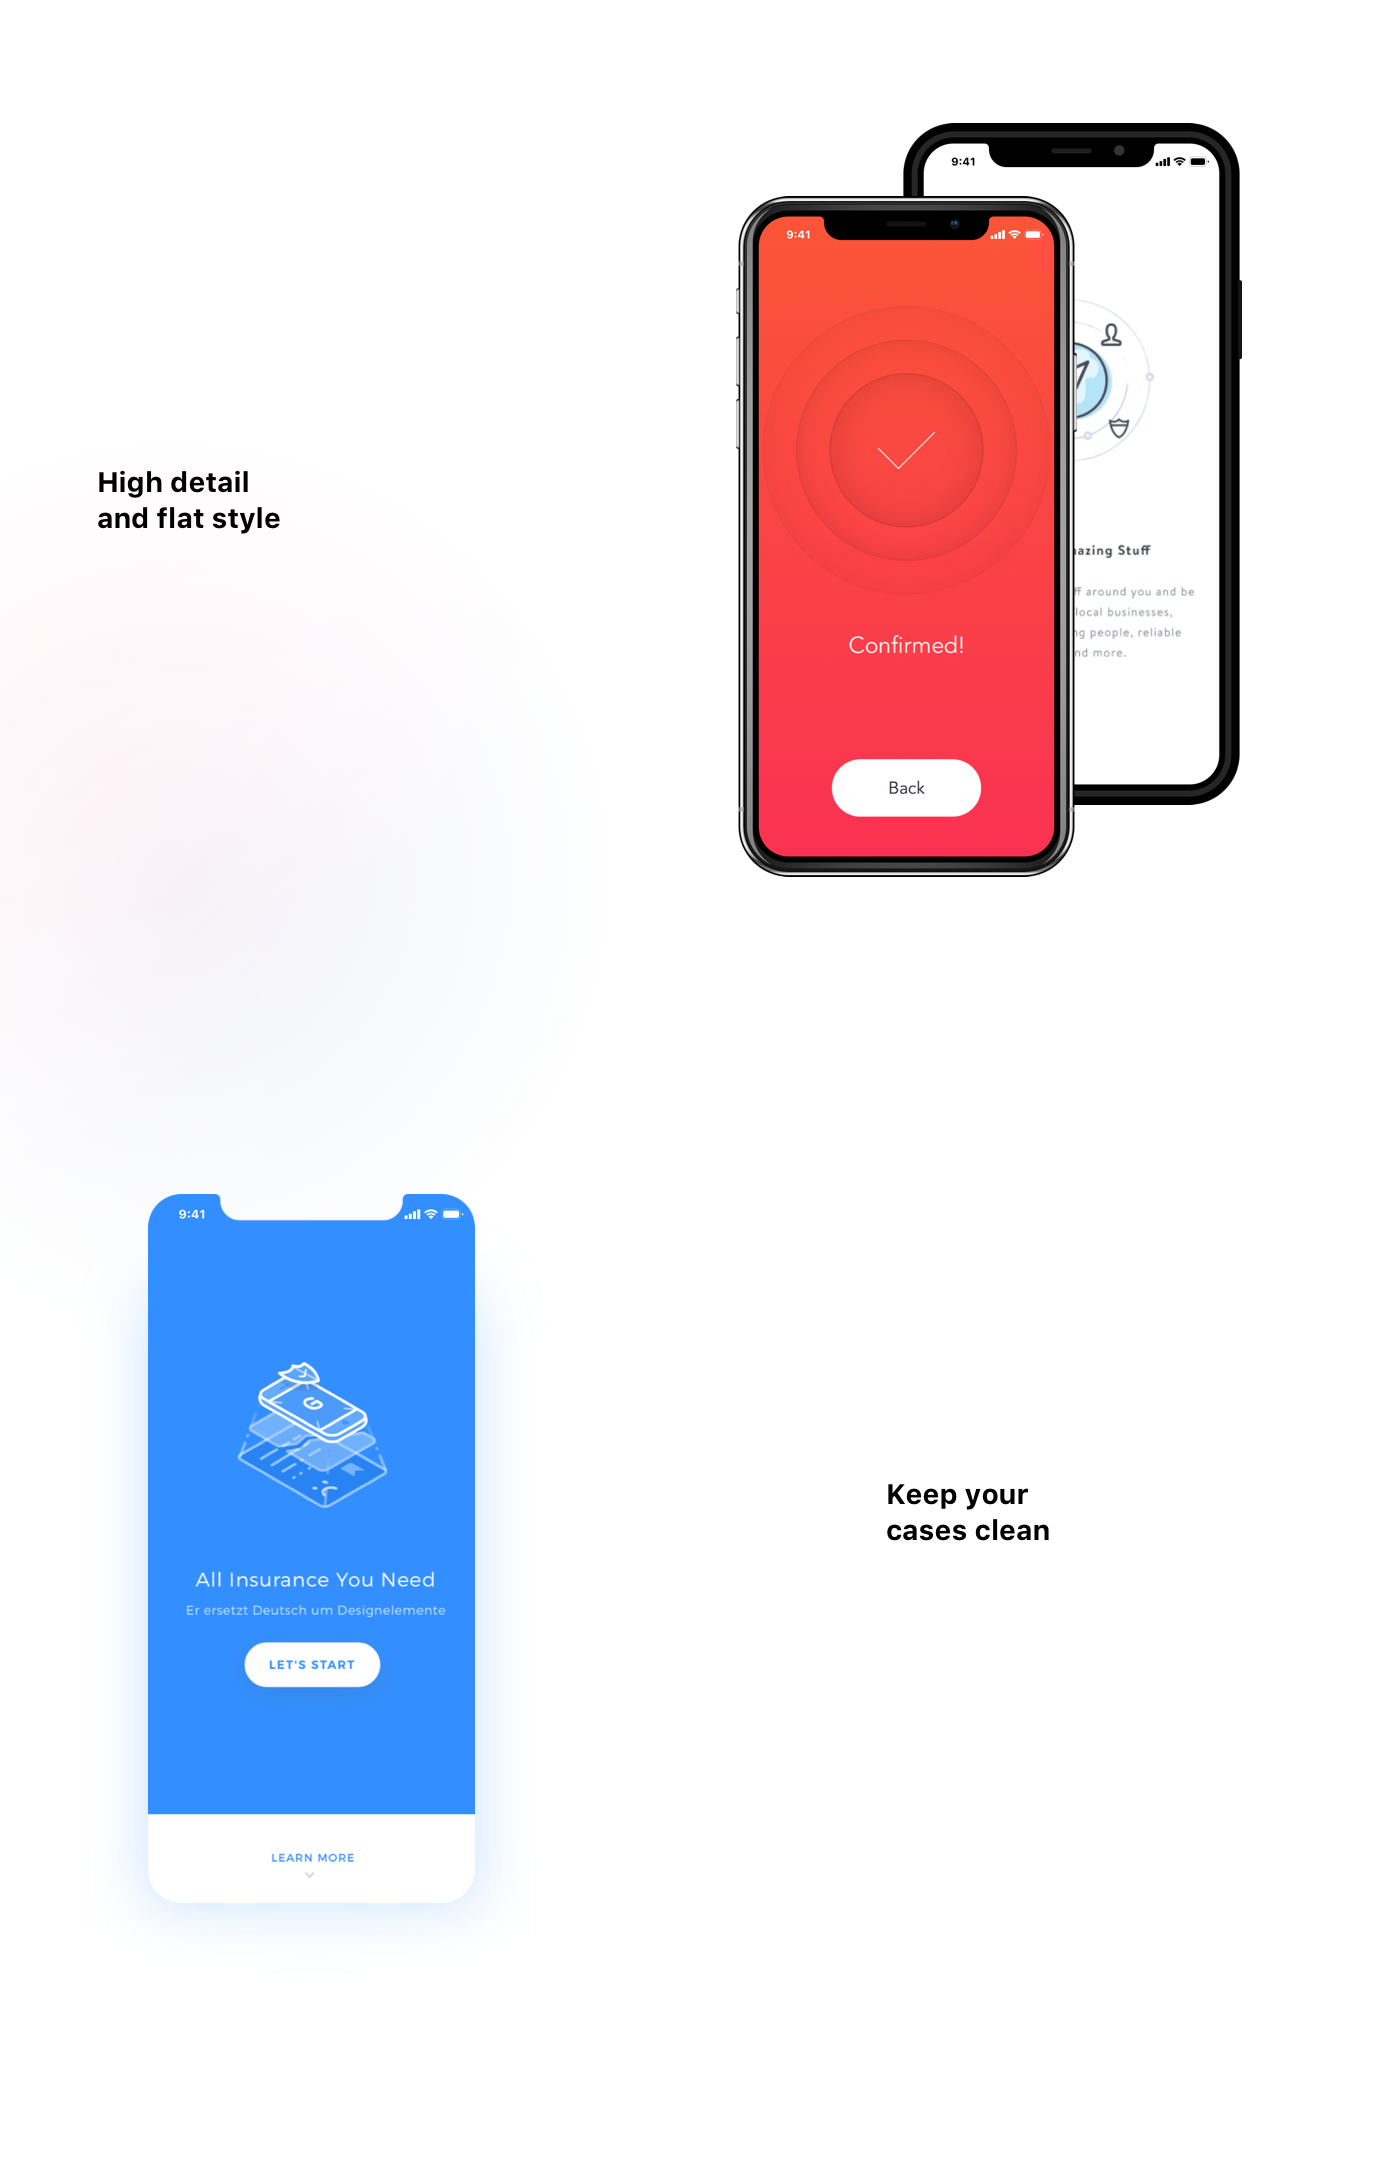 free freebie sketch iphone Mockup iphone 8 smartphone Front View